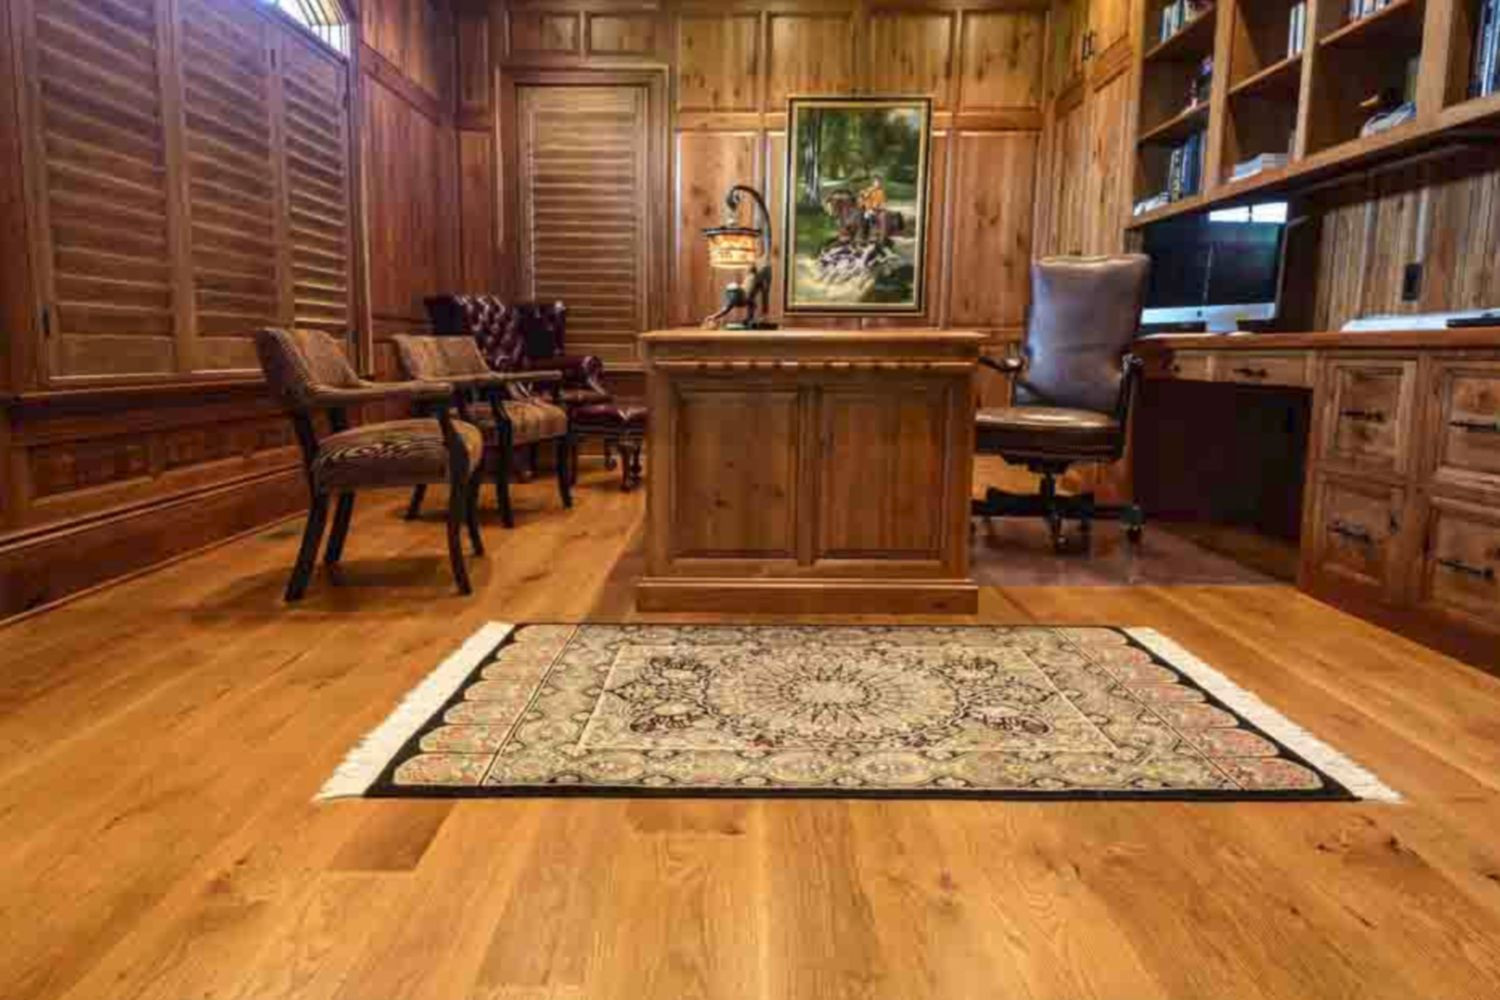 5 inch white oak hardwood flooring of top 5 brands for solid hardwood flooring throughout the woods company white oak 1500 x 1000 56a49f6d5f9b58b7d0d7e1db